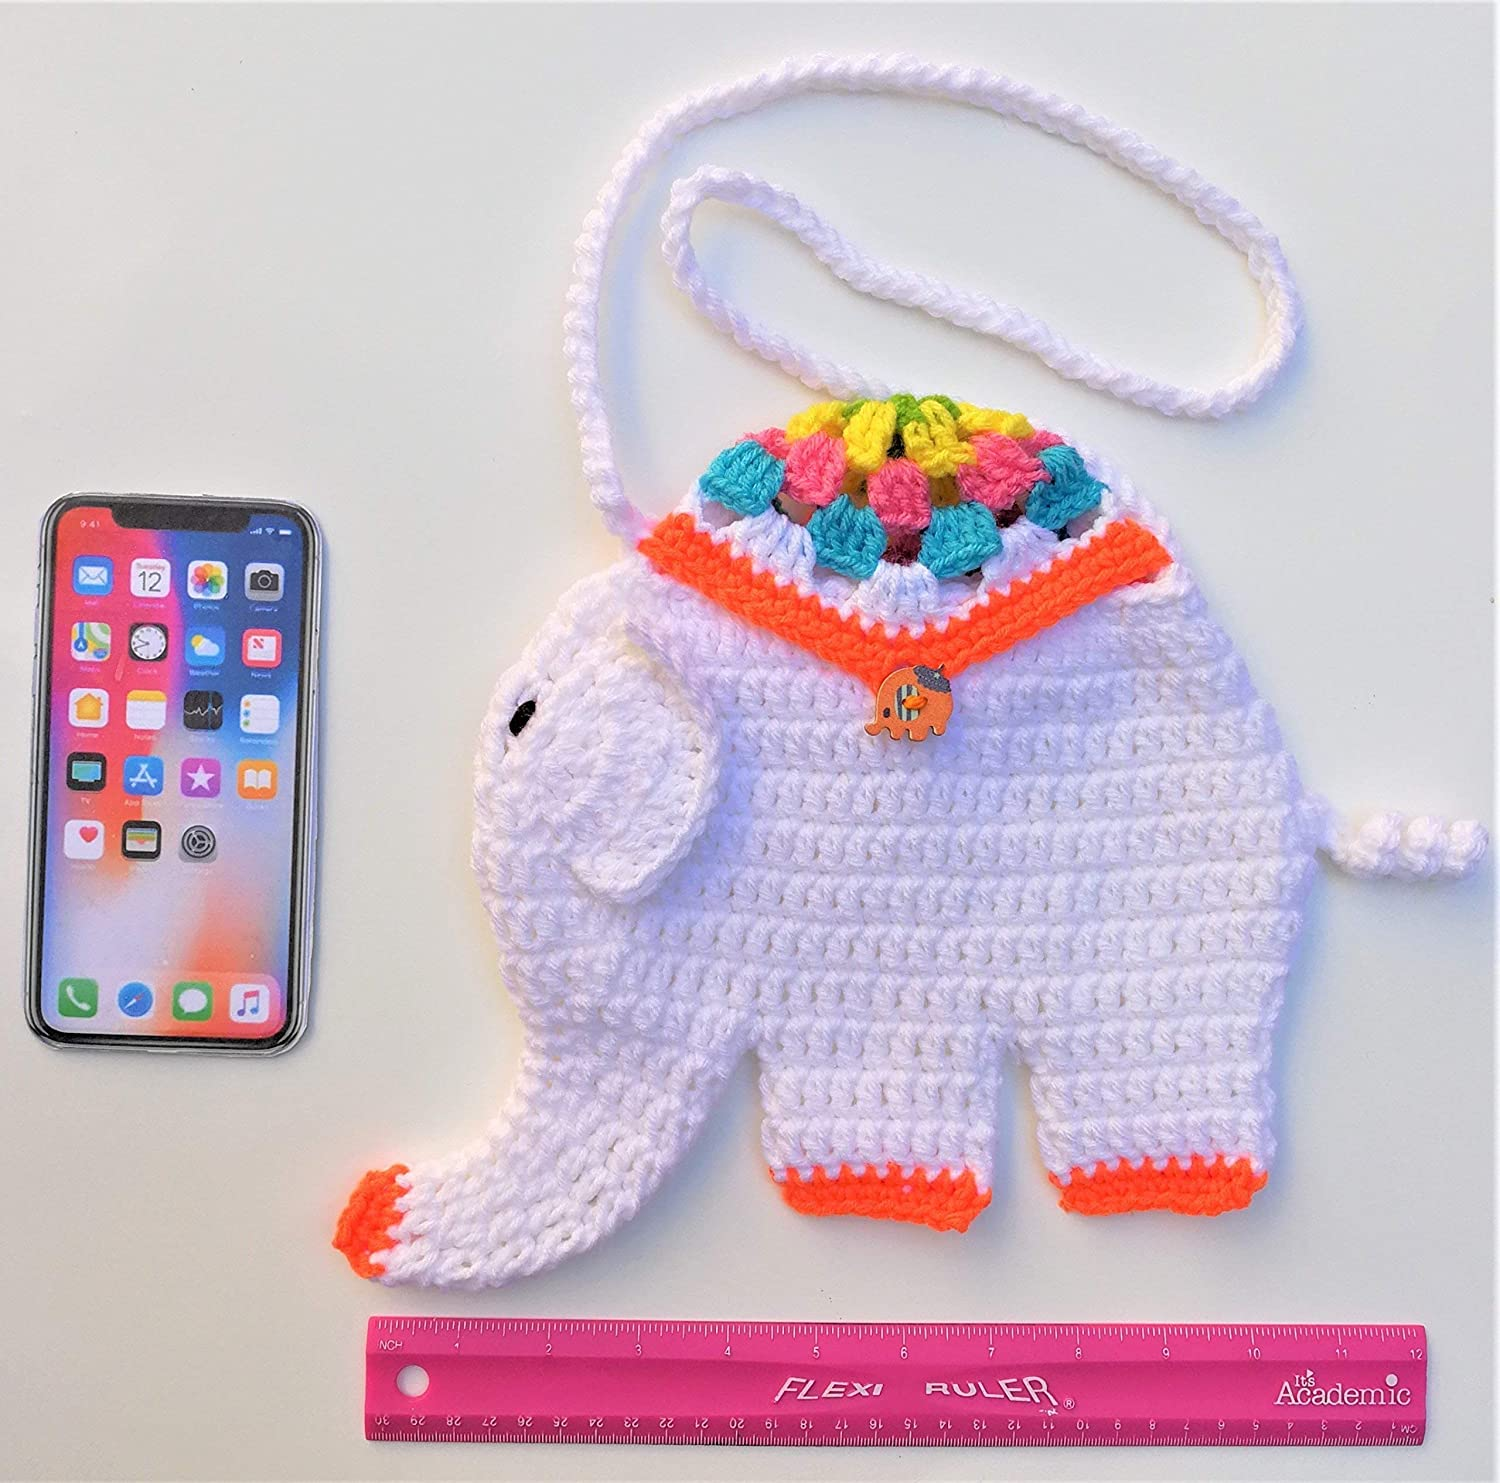 Cute Kids Elephant Gift Purse Little Girls Boys Stuffed Adorable Animal  Crocheted Handbag 94061bc93f451